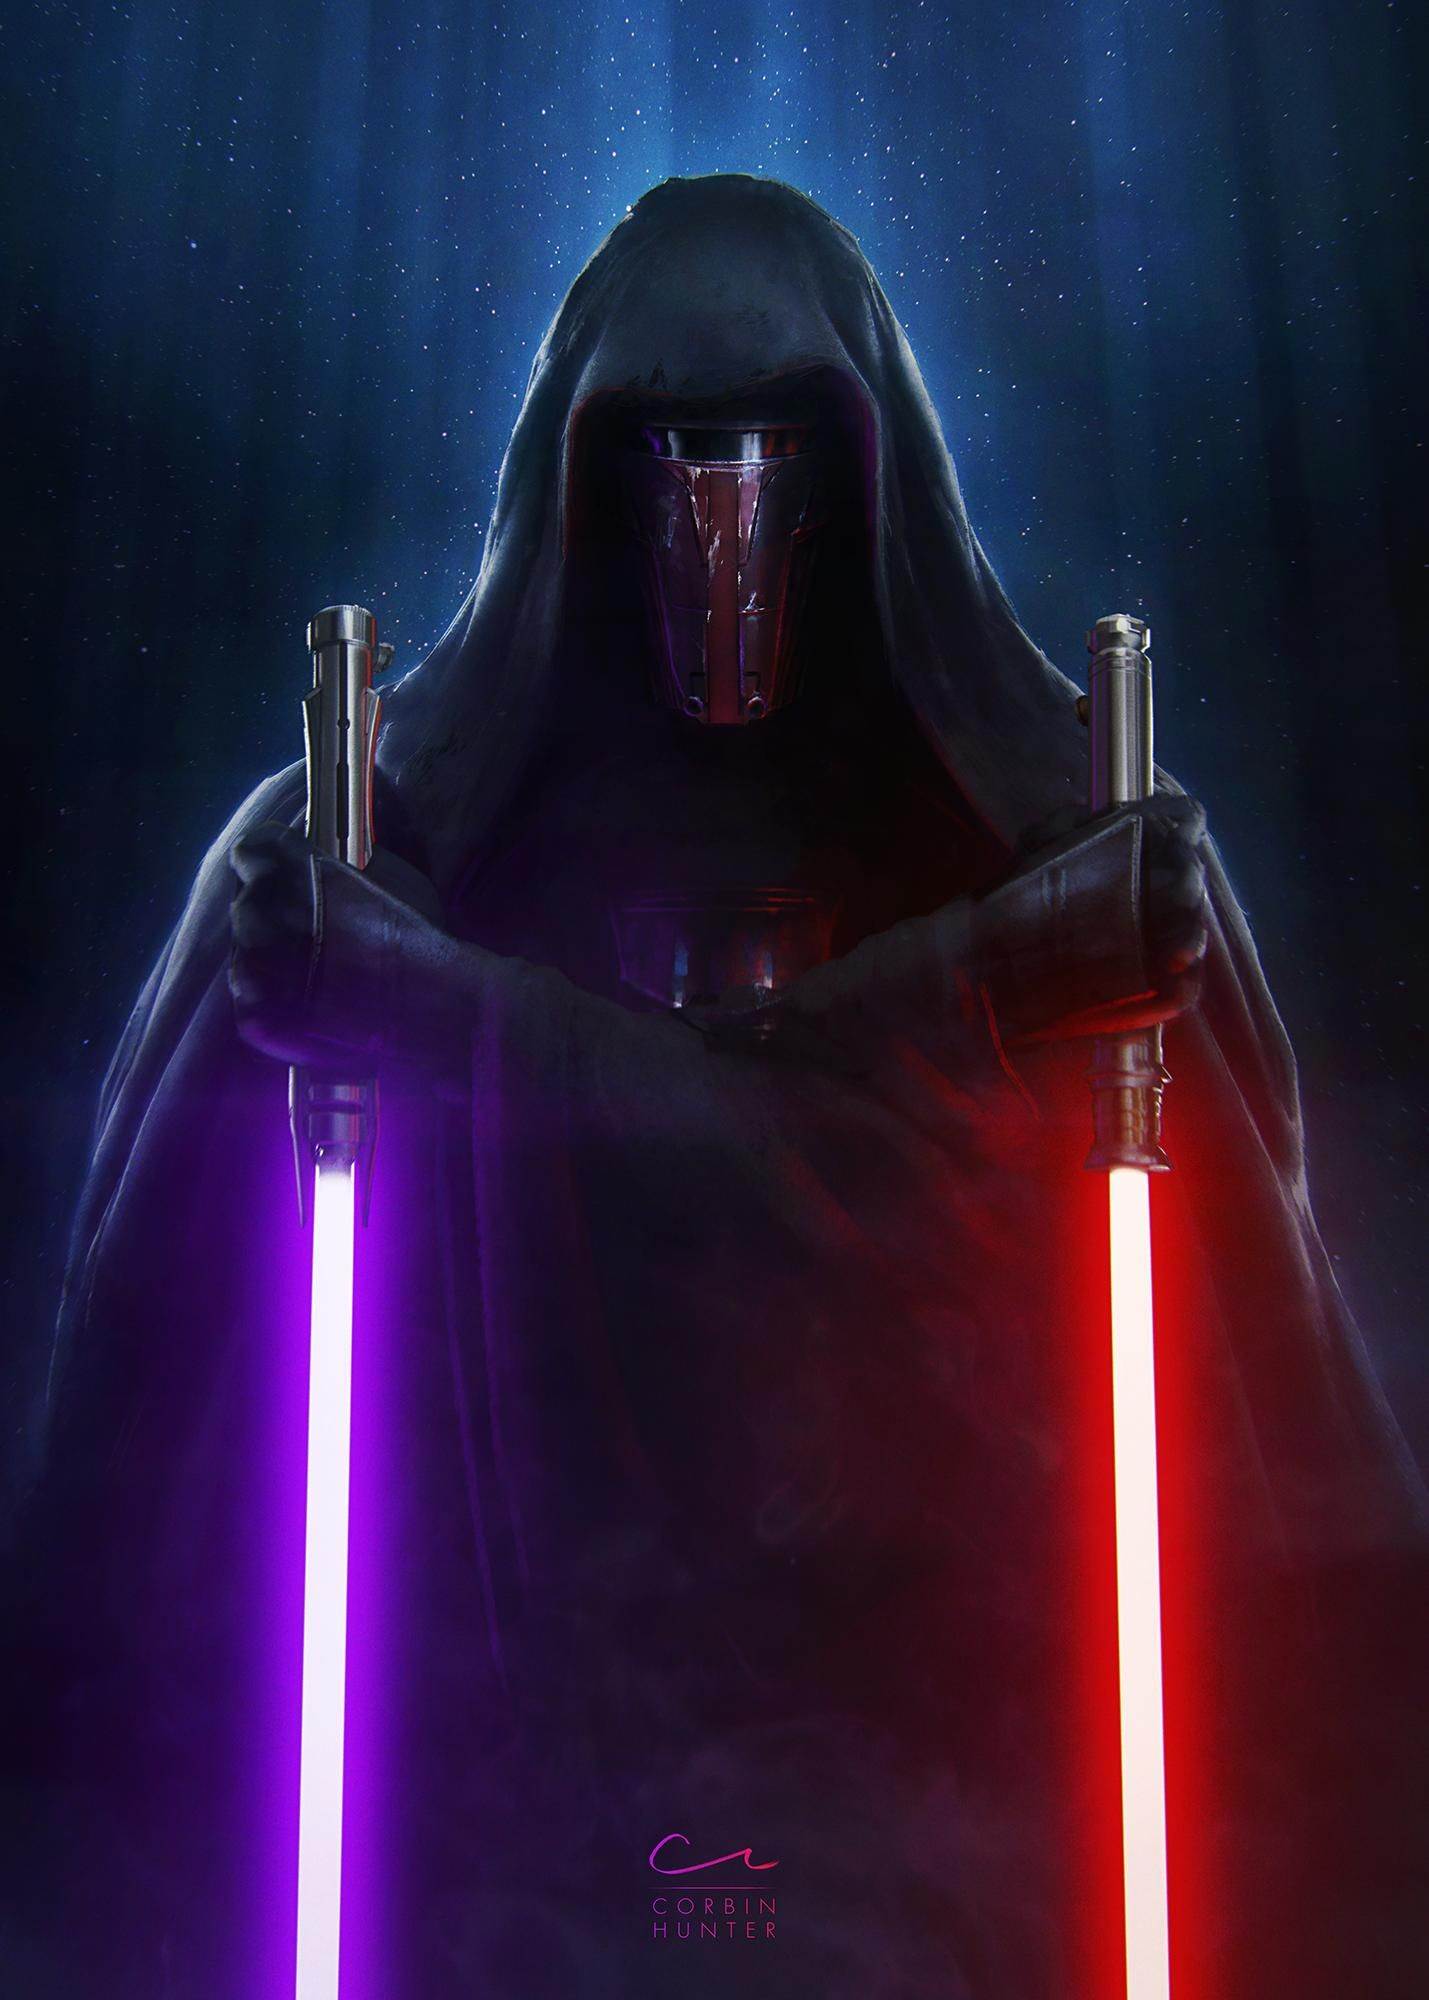 Kotor phone wallpapers | Star wars | Star wars darth revan